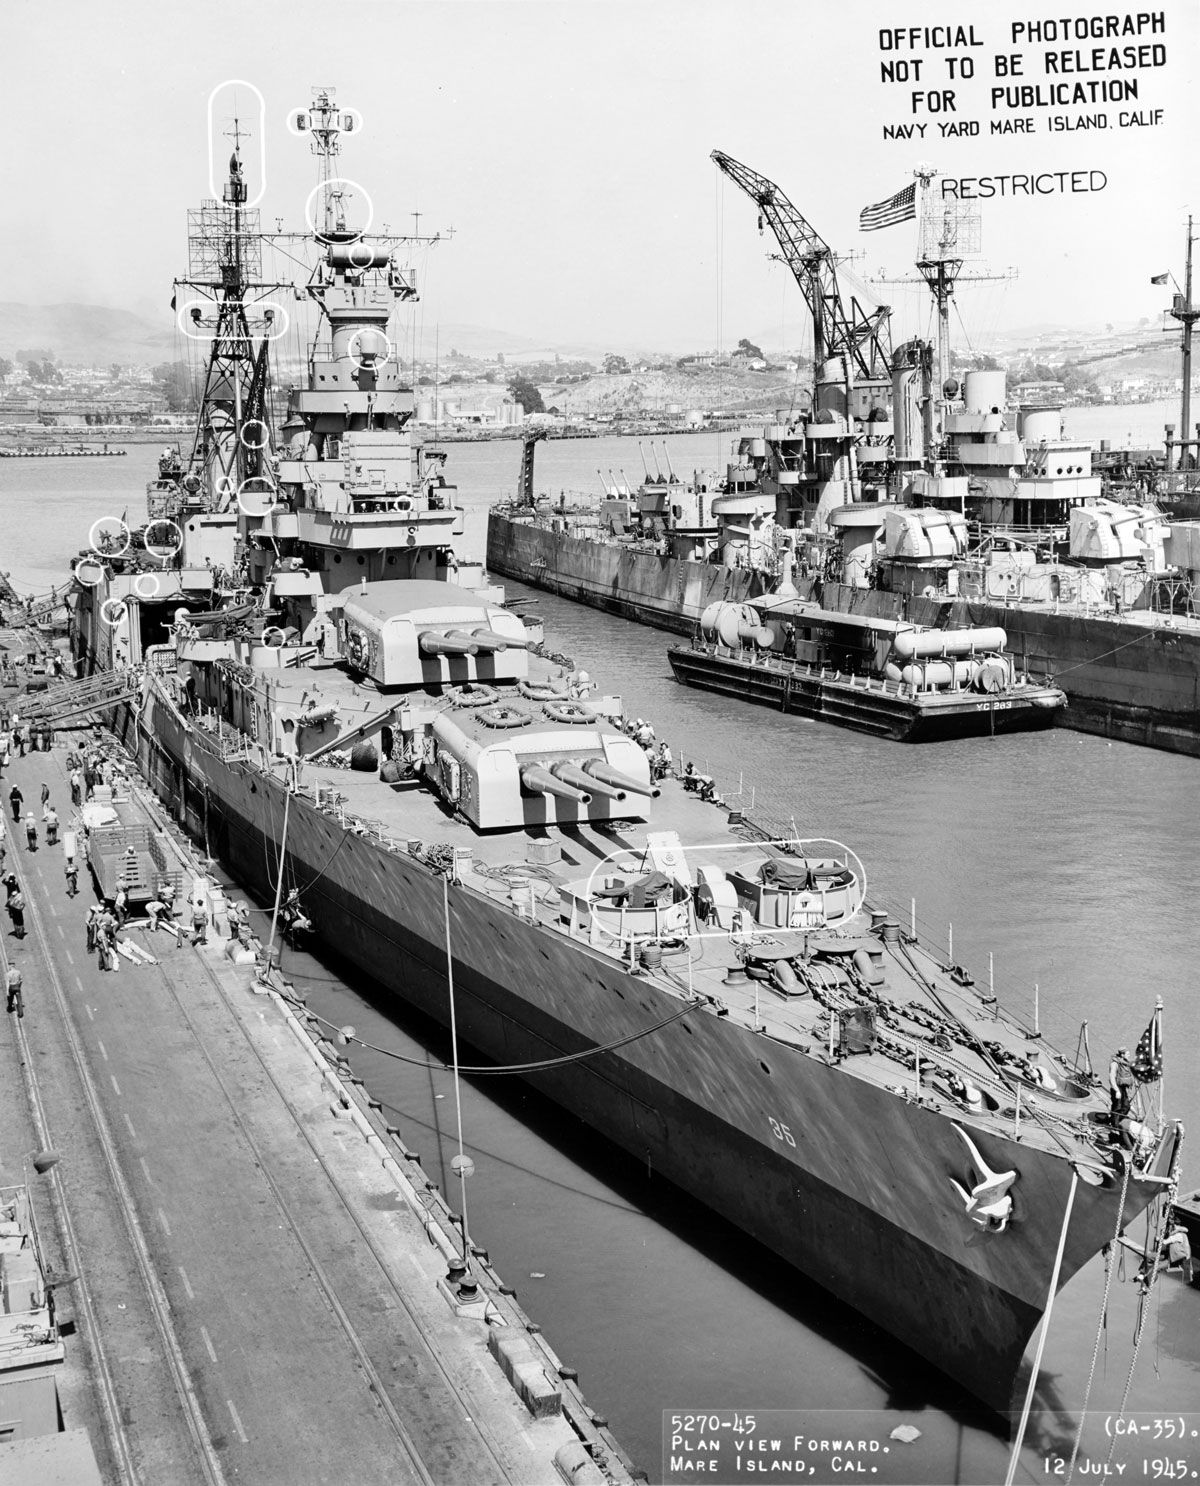 The US Navy Portland-class heavy cruiser USS Indianapolis (CA 35) in port at the Mare Island Navy Yard, in Northern California following its final overhaul. The ship was sunk on July 30, 1945 by an Imperial Japanese submarine in the Philippine Sea following delivery of parts for Little Boy, the first atomic bomb used in combat, to the United States air base at Tinian.